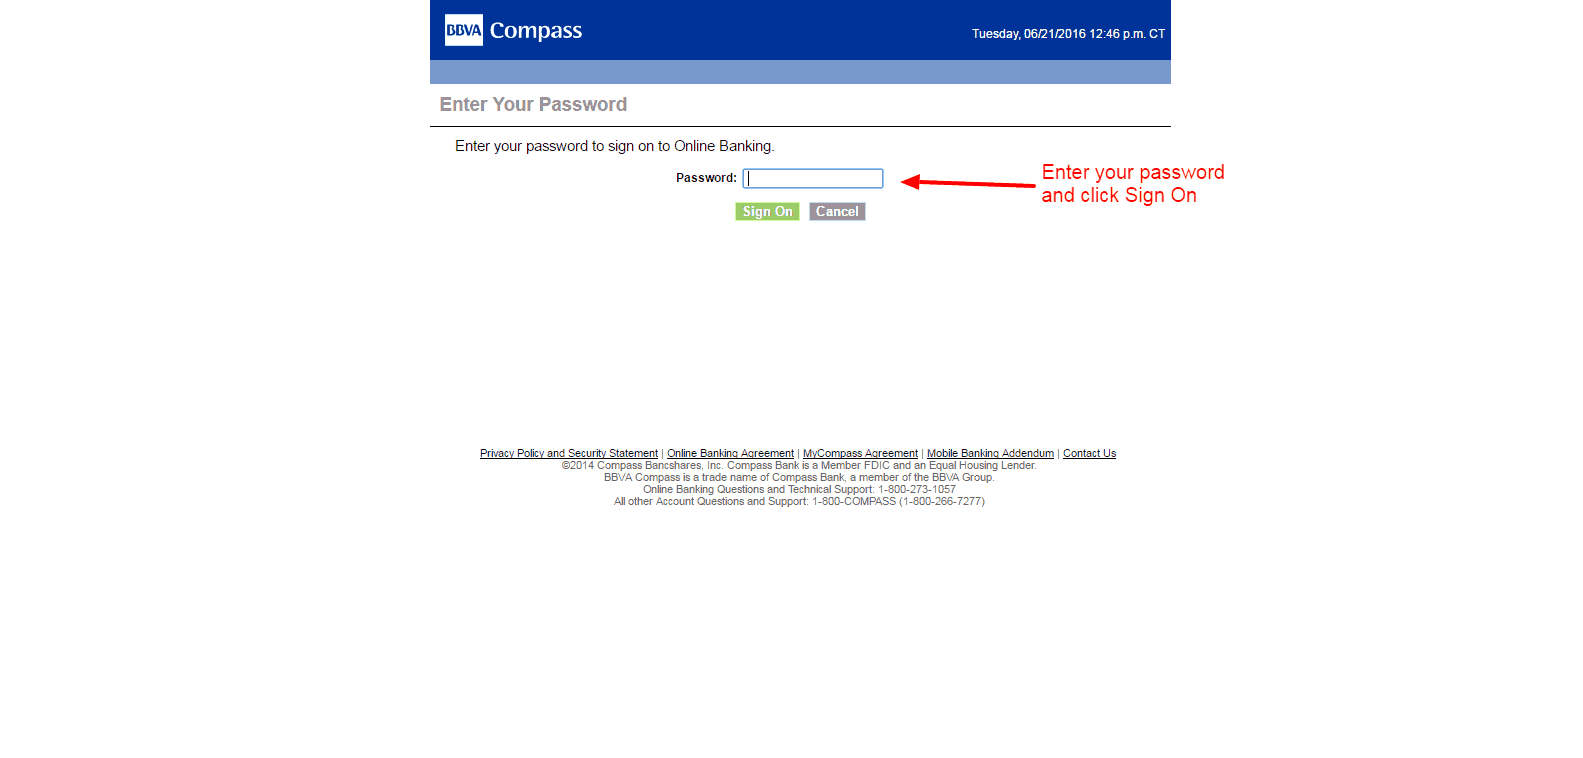 BBVA Compass login 2